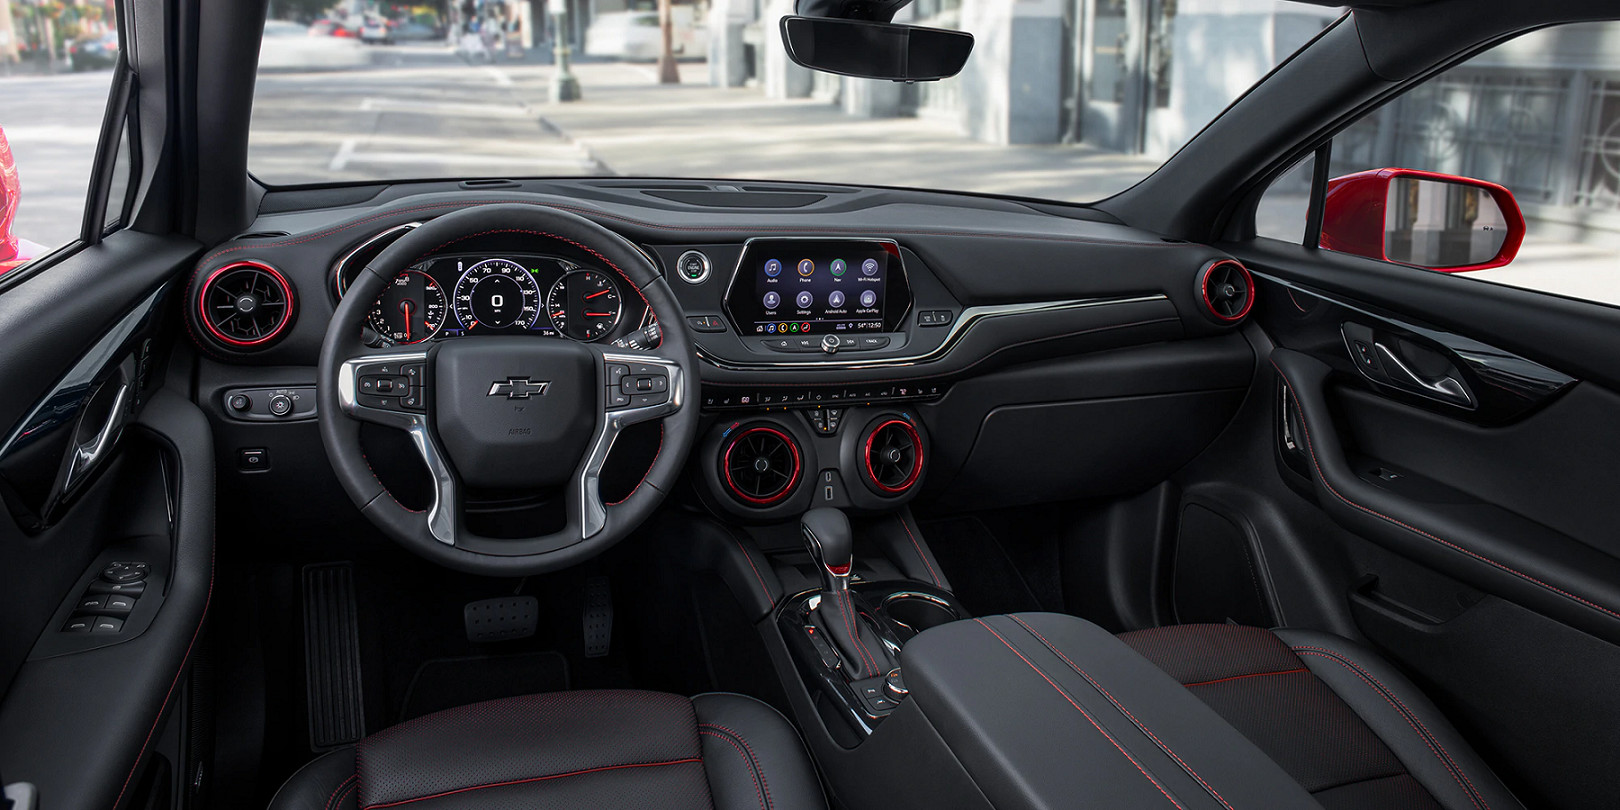 Stunning Interior of the 2020 Blazer